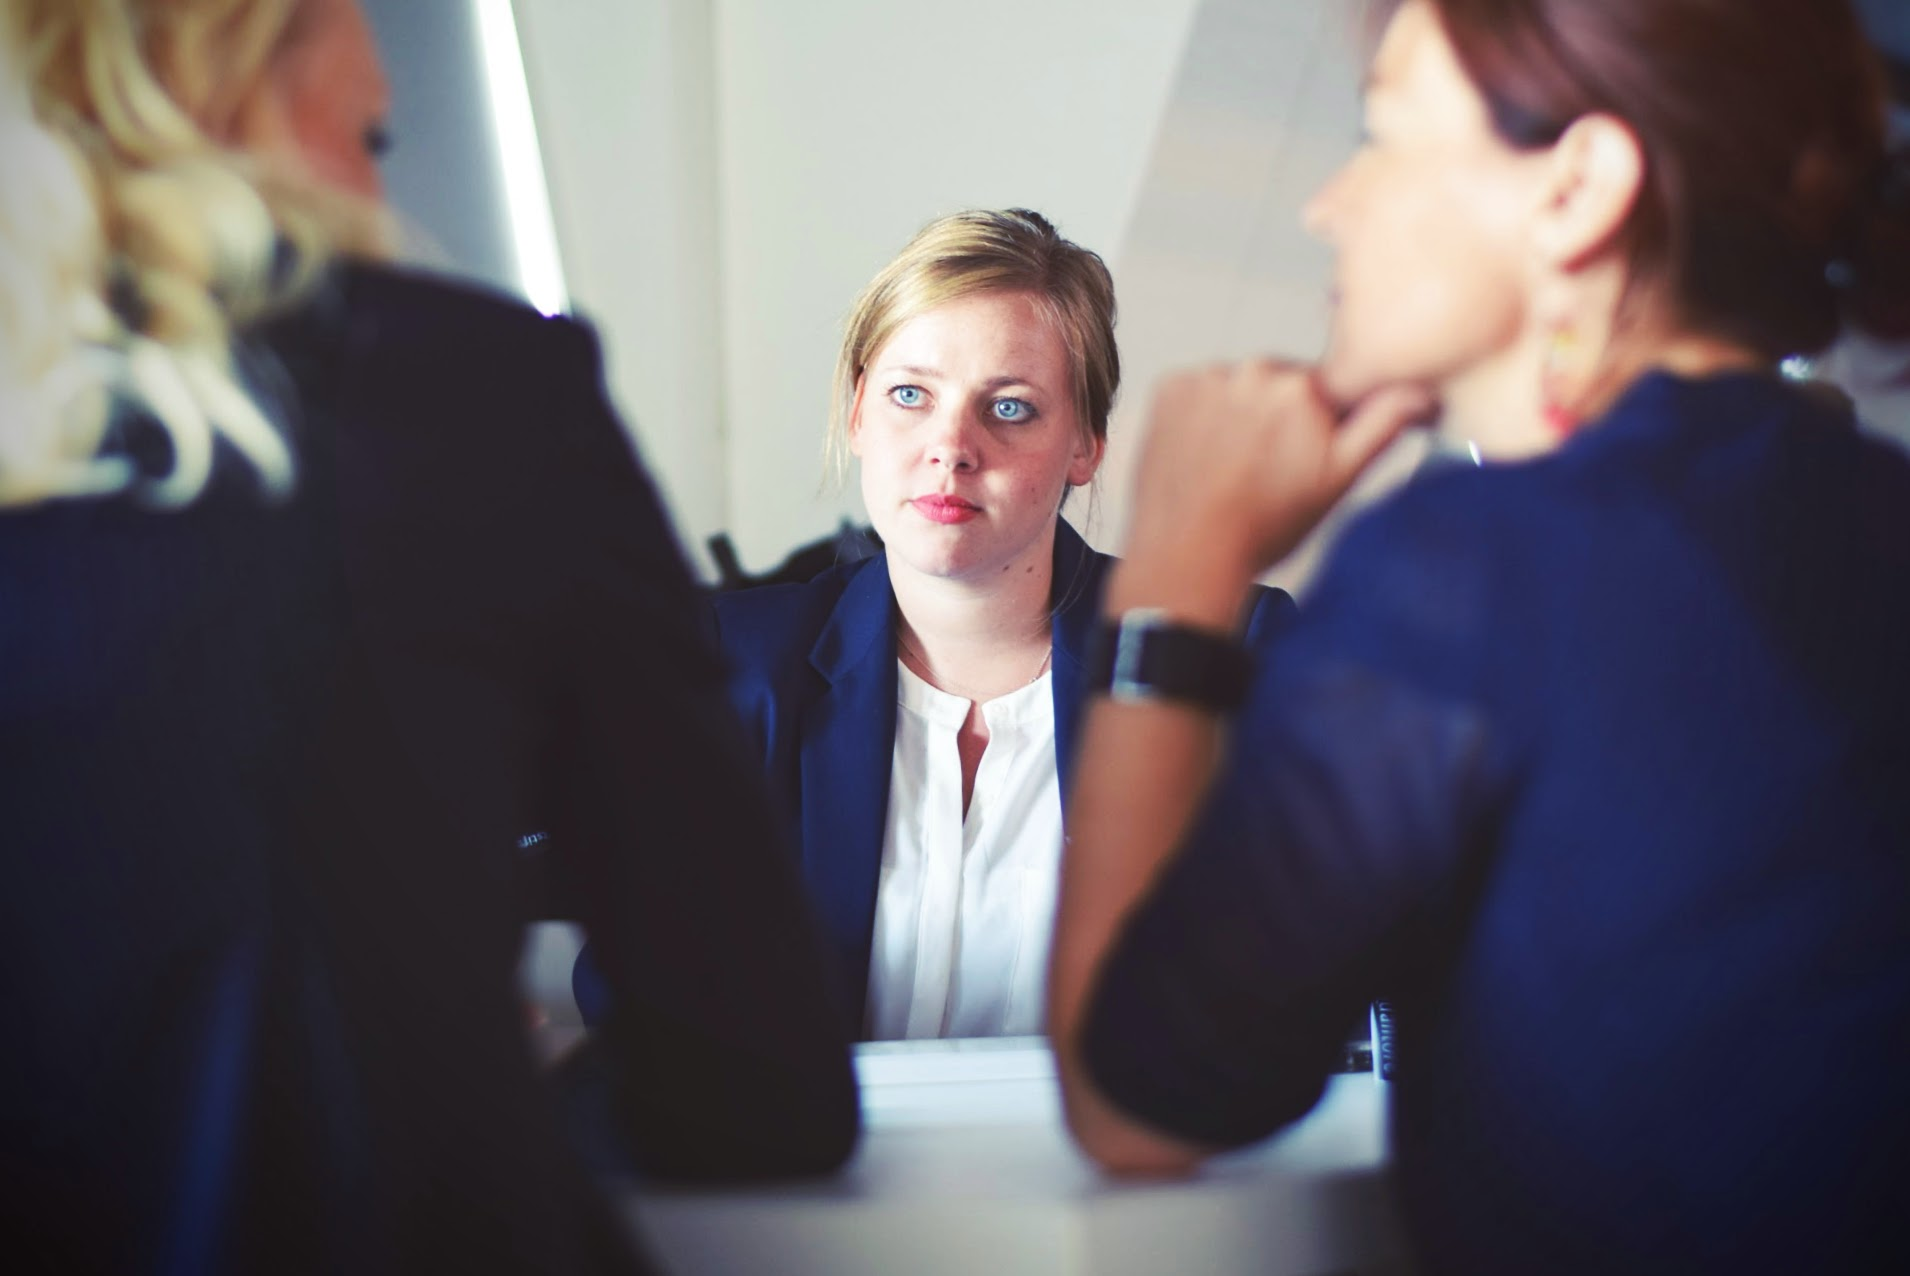 What Do Financial Recruiters Look for in a Candidate?